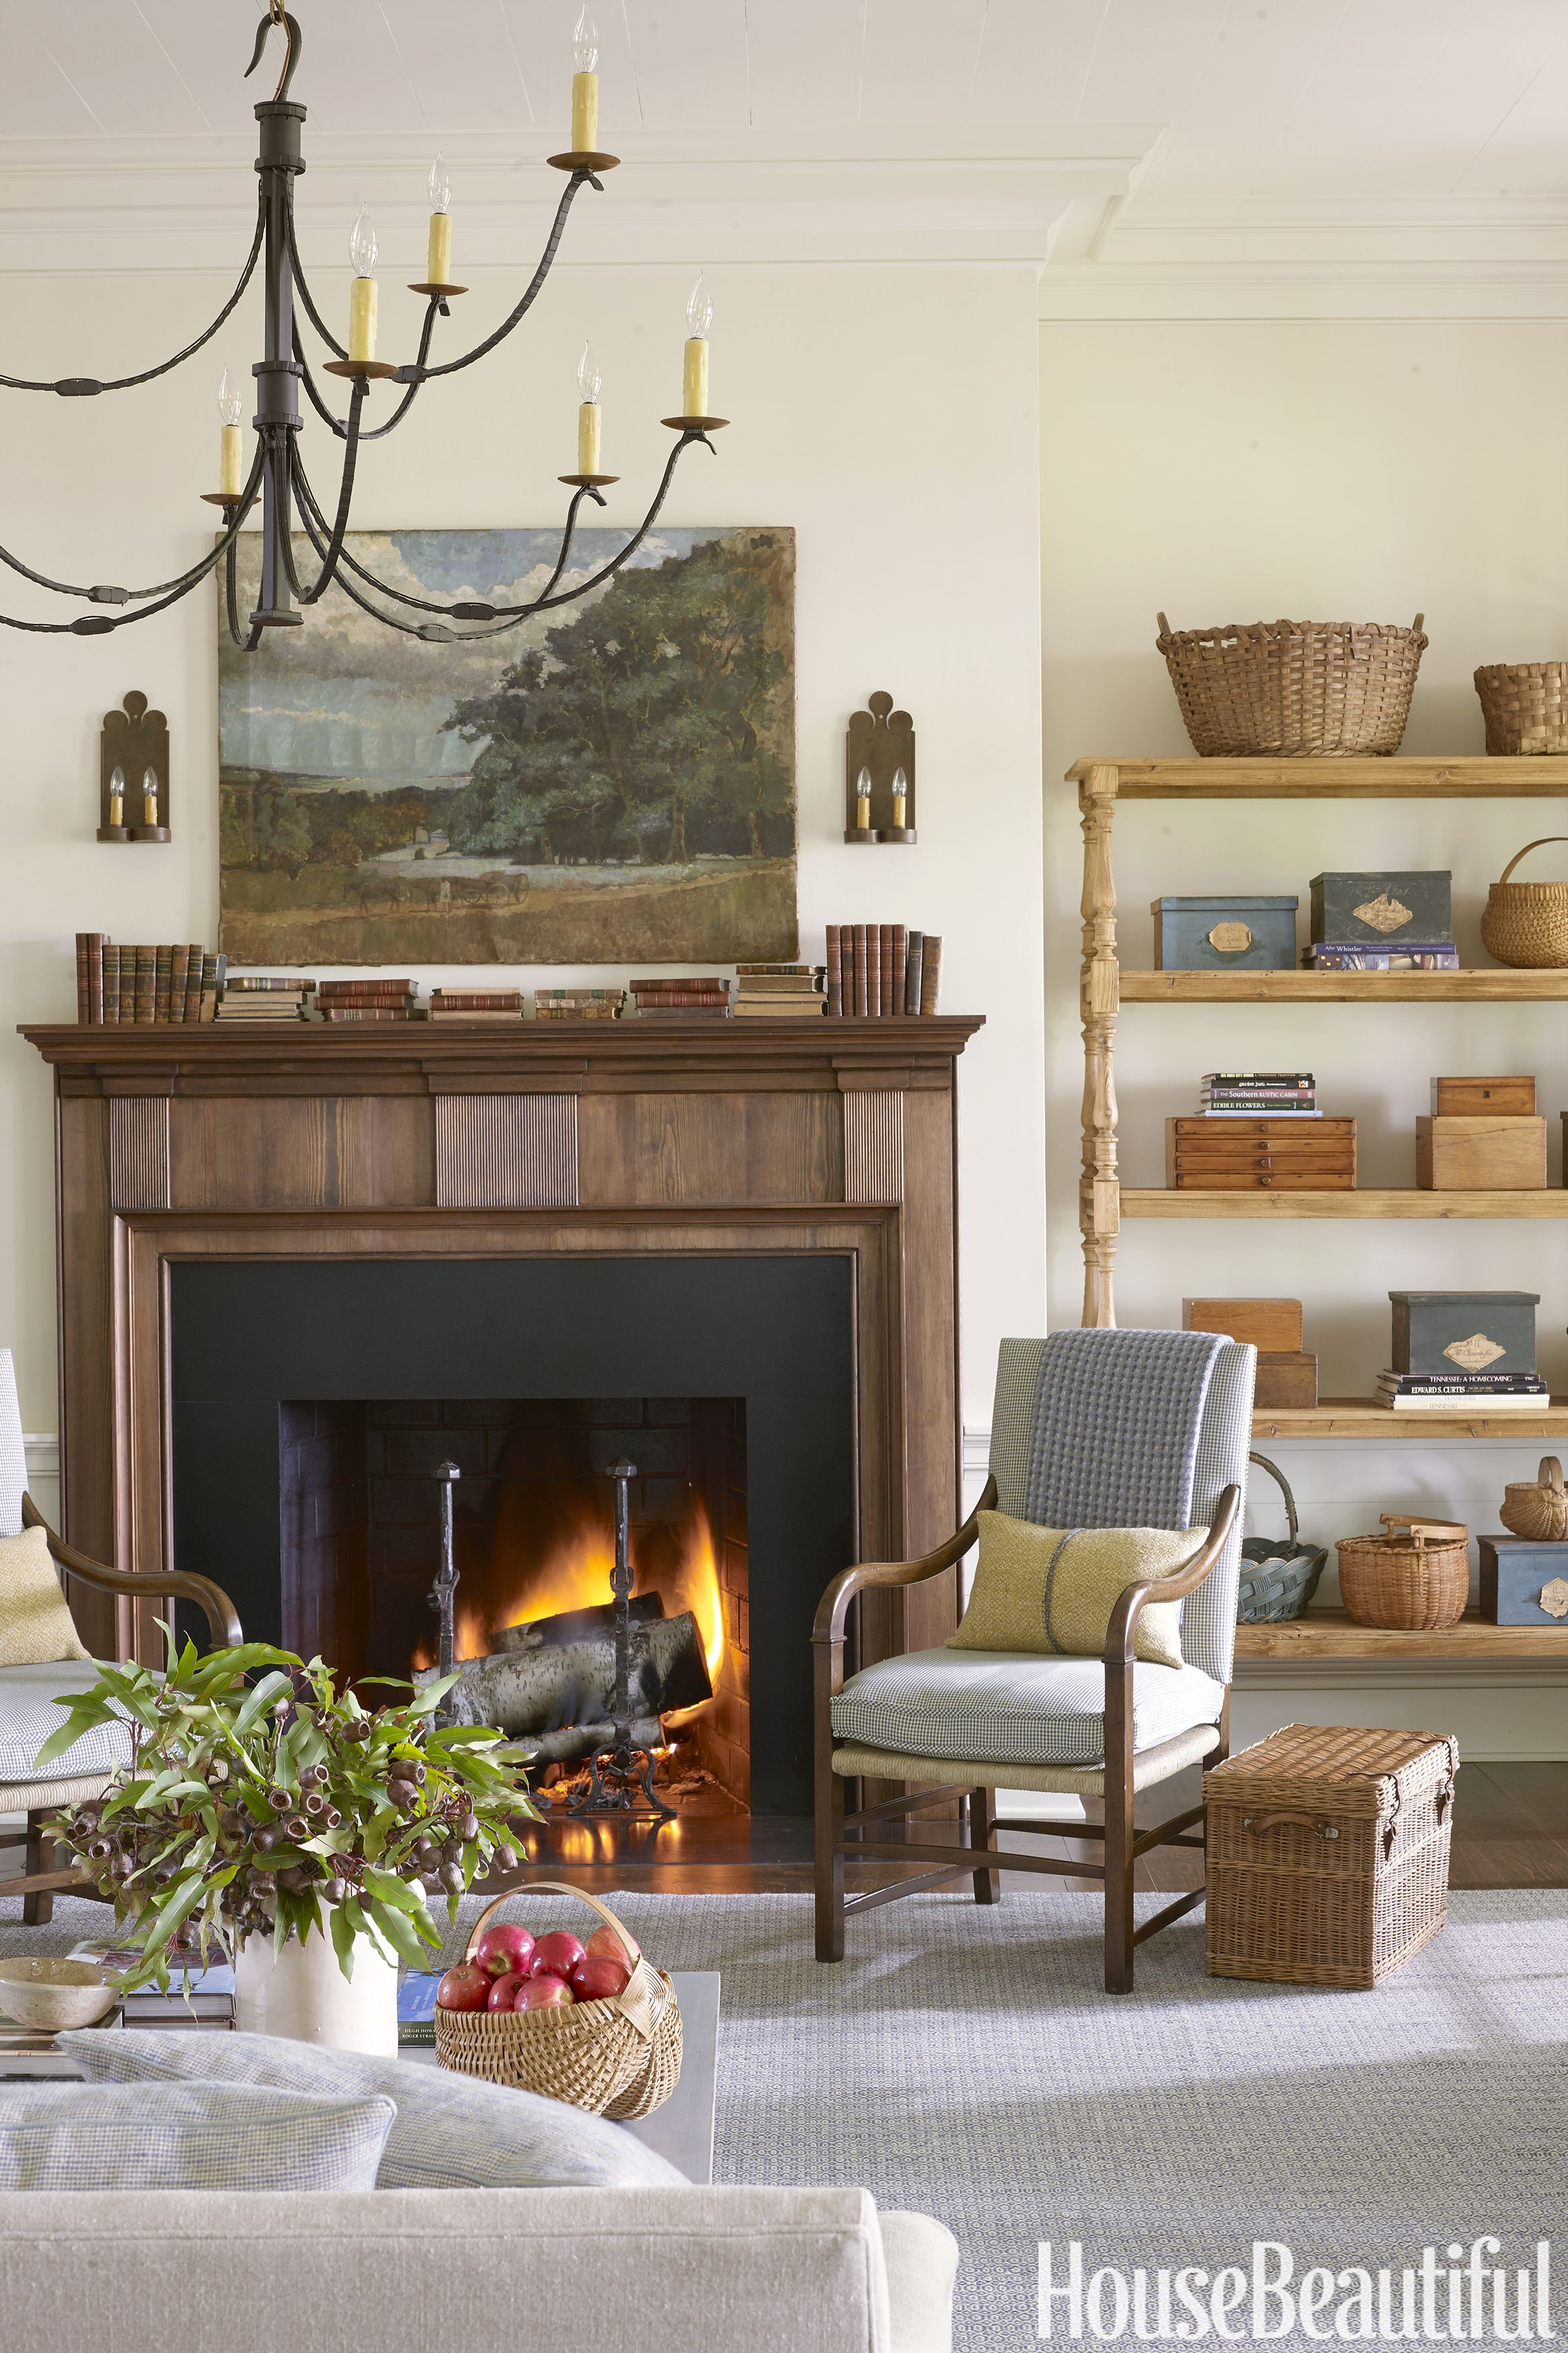 barbara westbrook living room & 70 Best Living Room Decorating Ideas u0026 Designs - HouseBeautiful.com